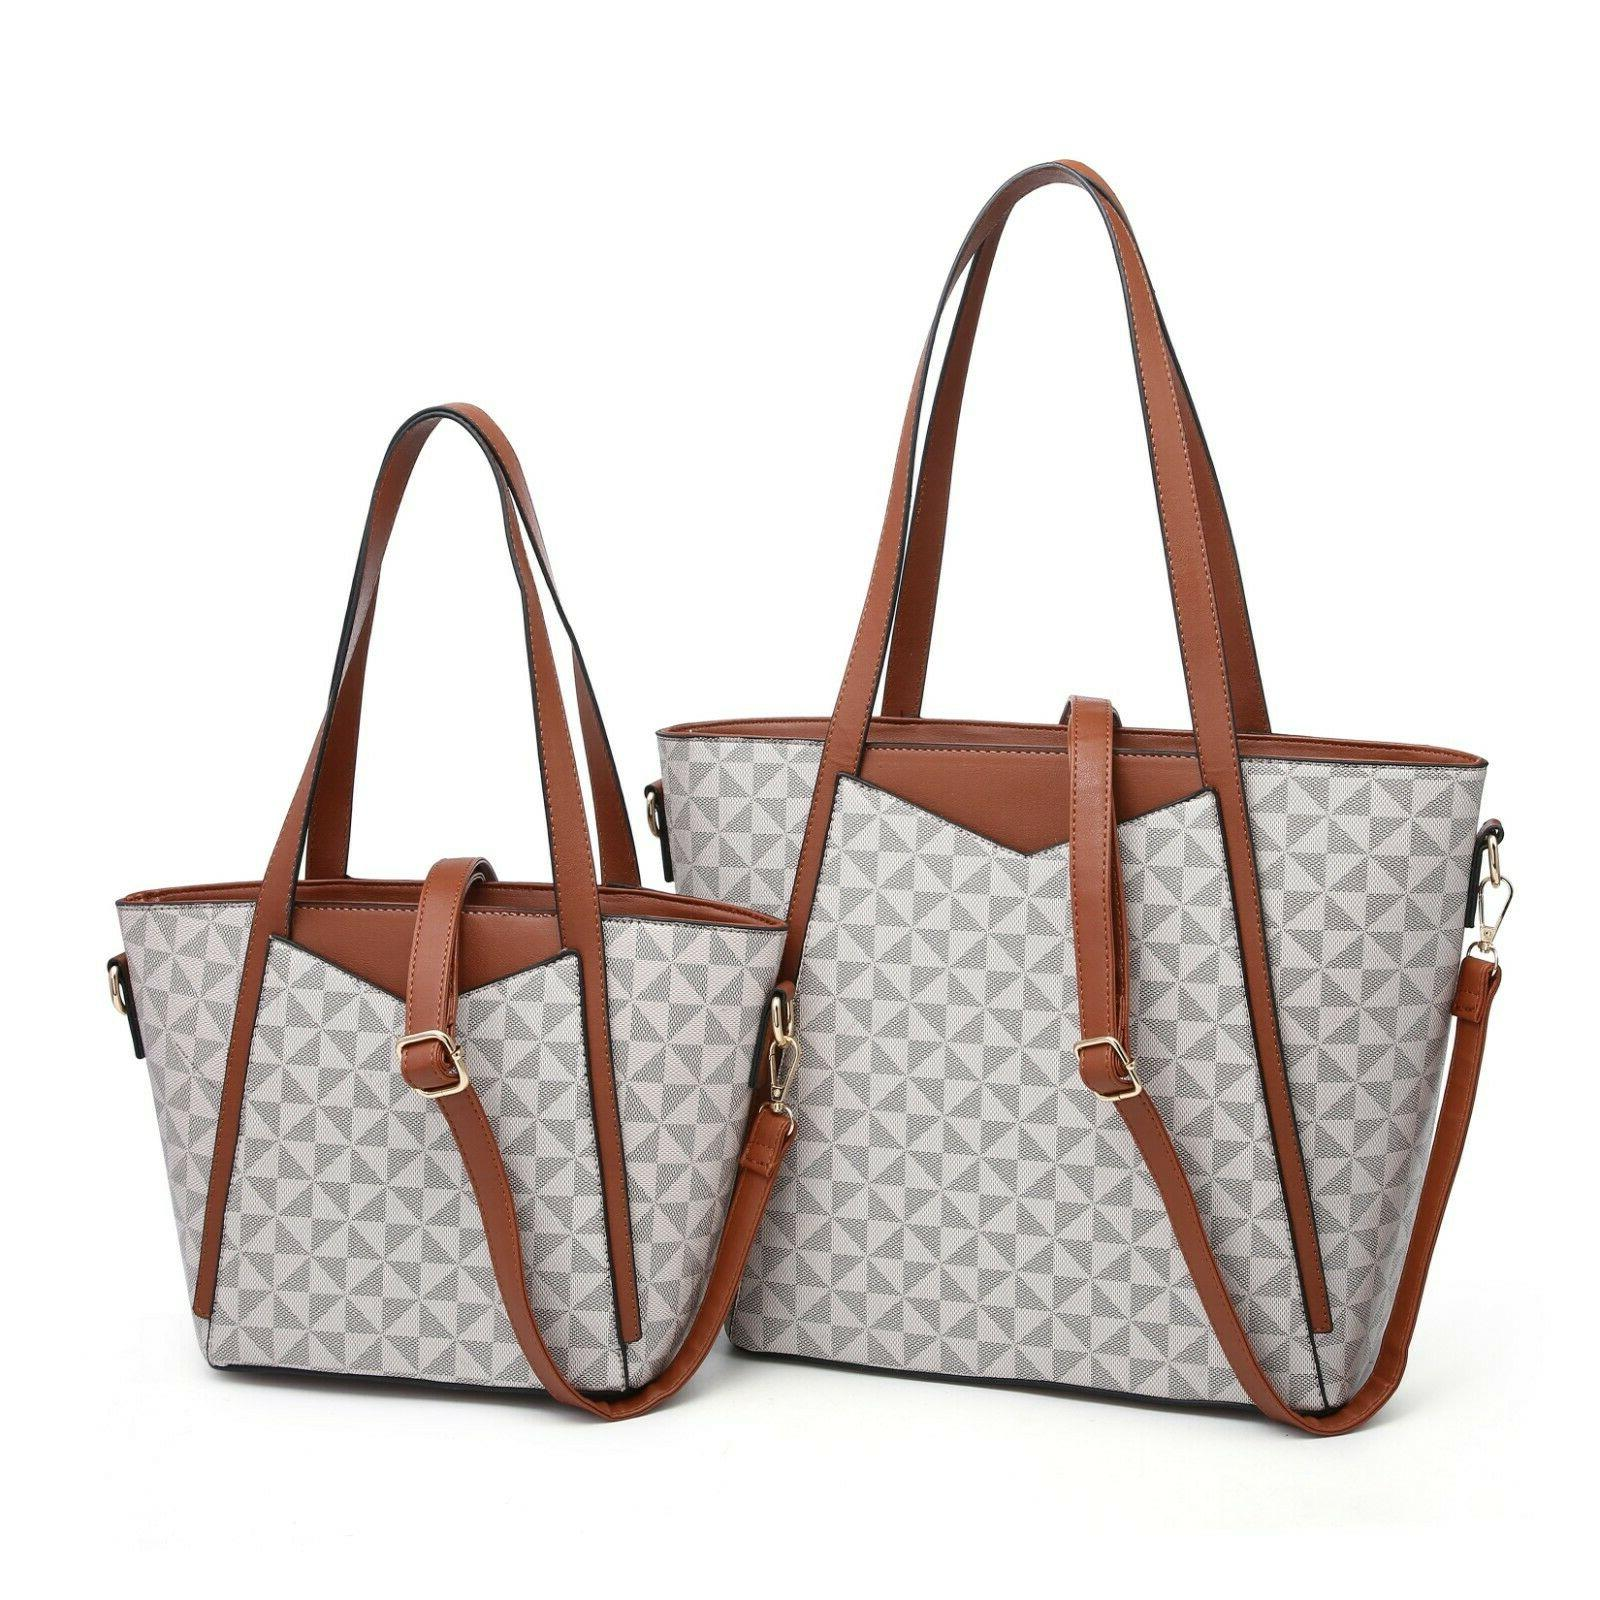 Women's Lady Satchel Pieces Set Tote Shoulder